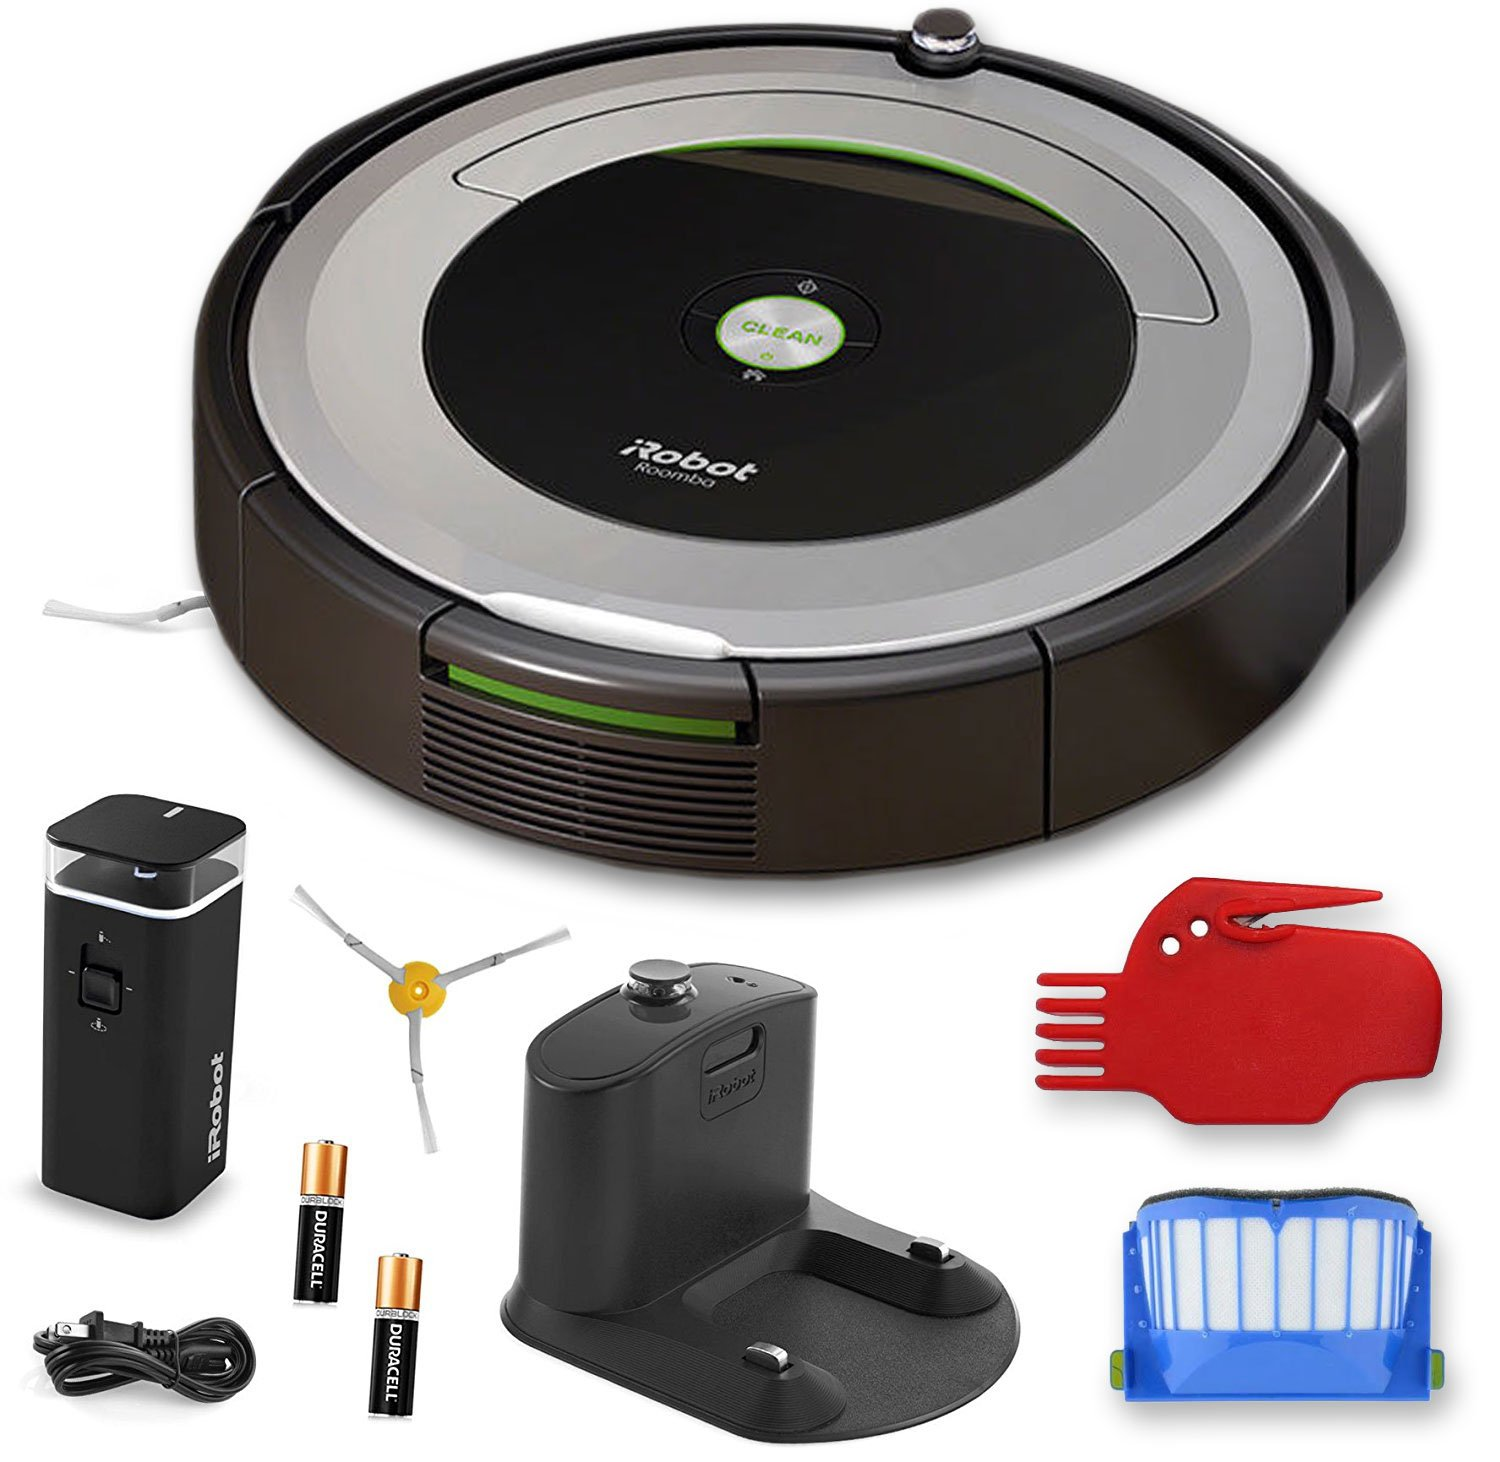 iRobot Roomba 690 Wi-Fi Connected Robotic Vacuum Cleaner + 1 Dual Mode Virtual Wall Barrier (With Batteries) + Extra Filter + More by iRobot (Image #7)